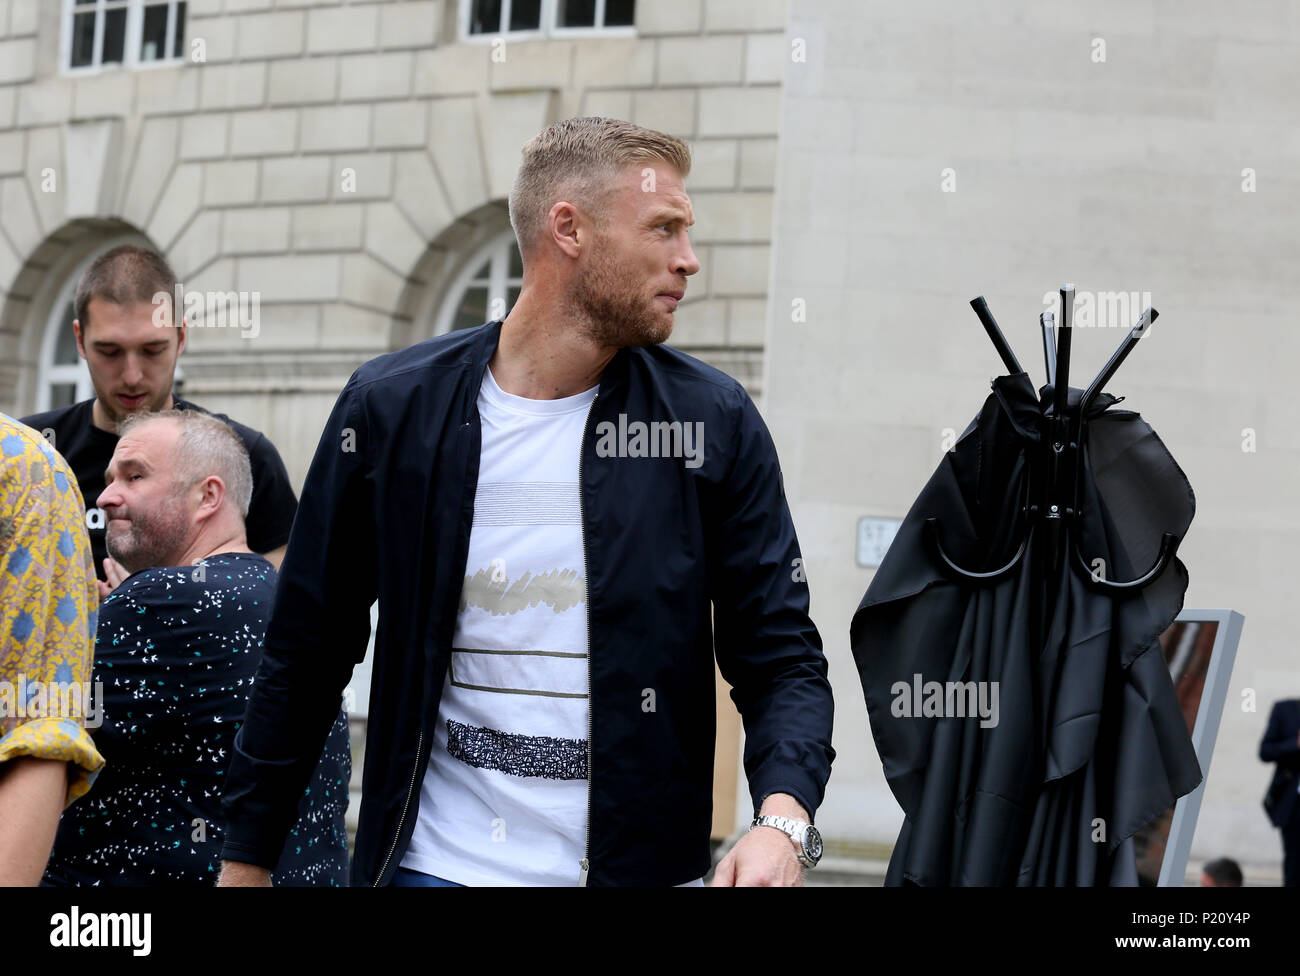 Manchester, UK. 13th June 2018. Former international cricketer, Andrew 'Freddie' Flintoff  MBE been filmed in the city at a pop up barbers for a TV programme, St Peters square, Manchester, 13th June, 2018 (C)Barbara Cook/Alamy Live News - Stock Image